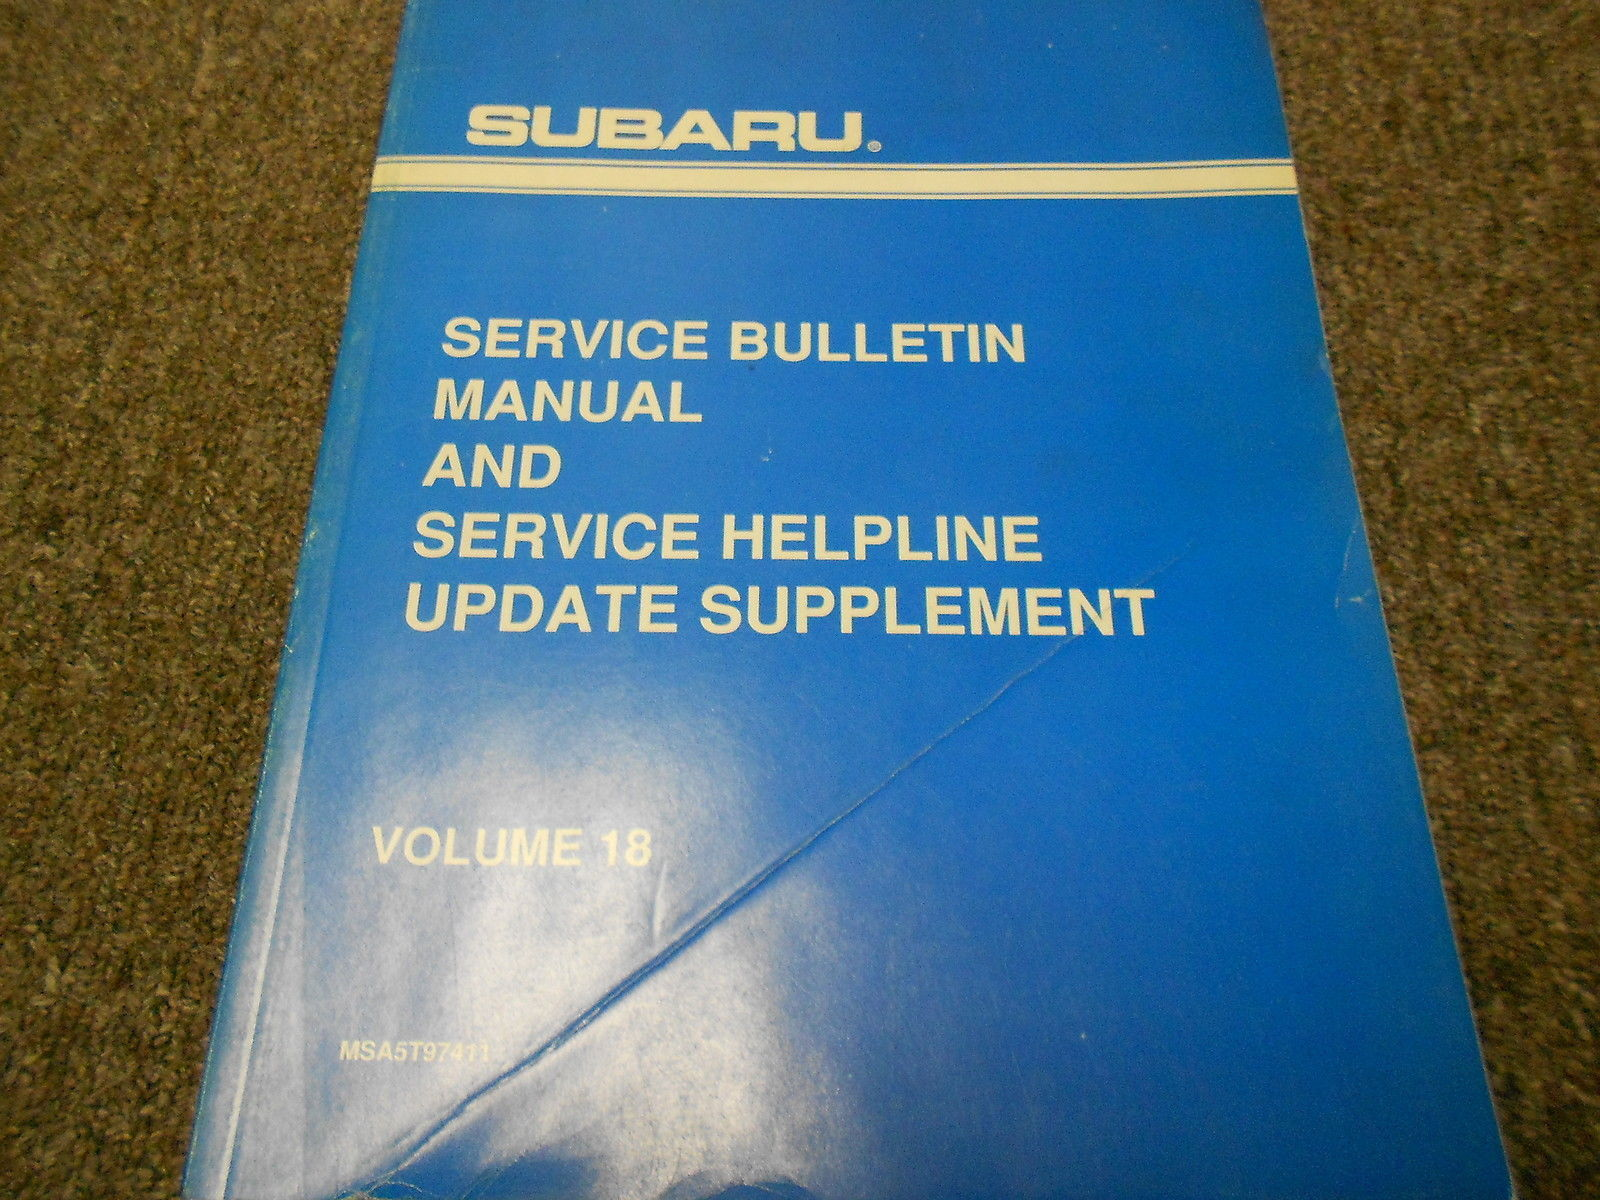 1996 Subaru Service Bulletin Manual & Service Help Line Update Supplement Vol 18